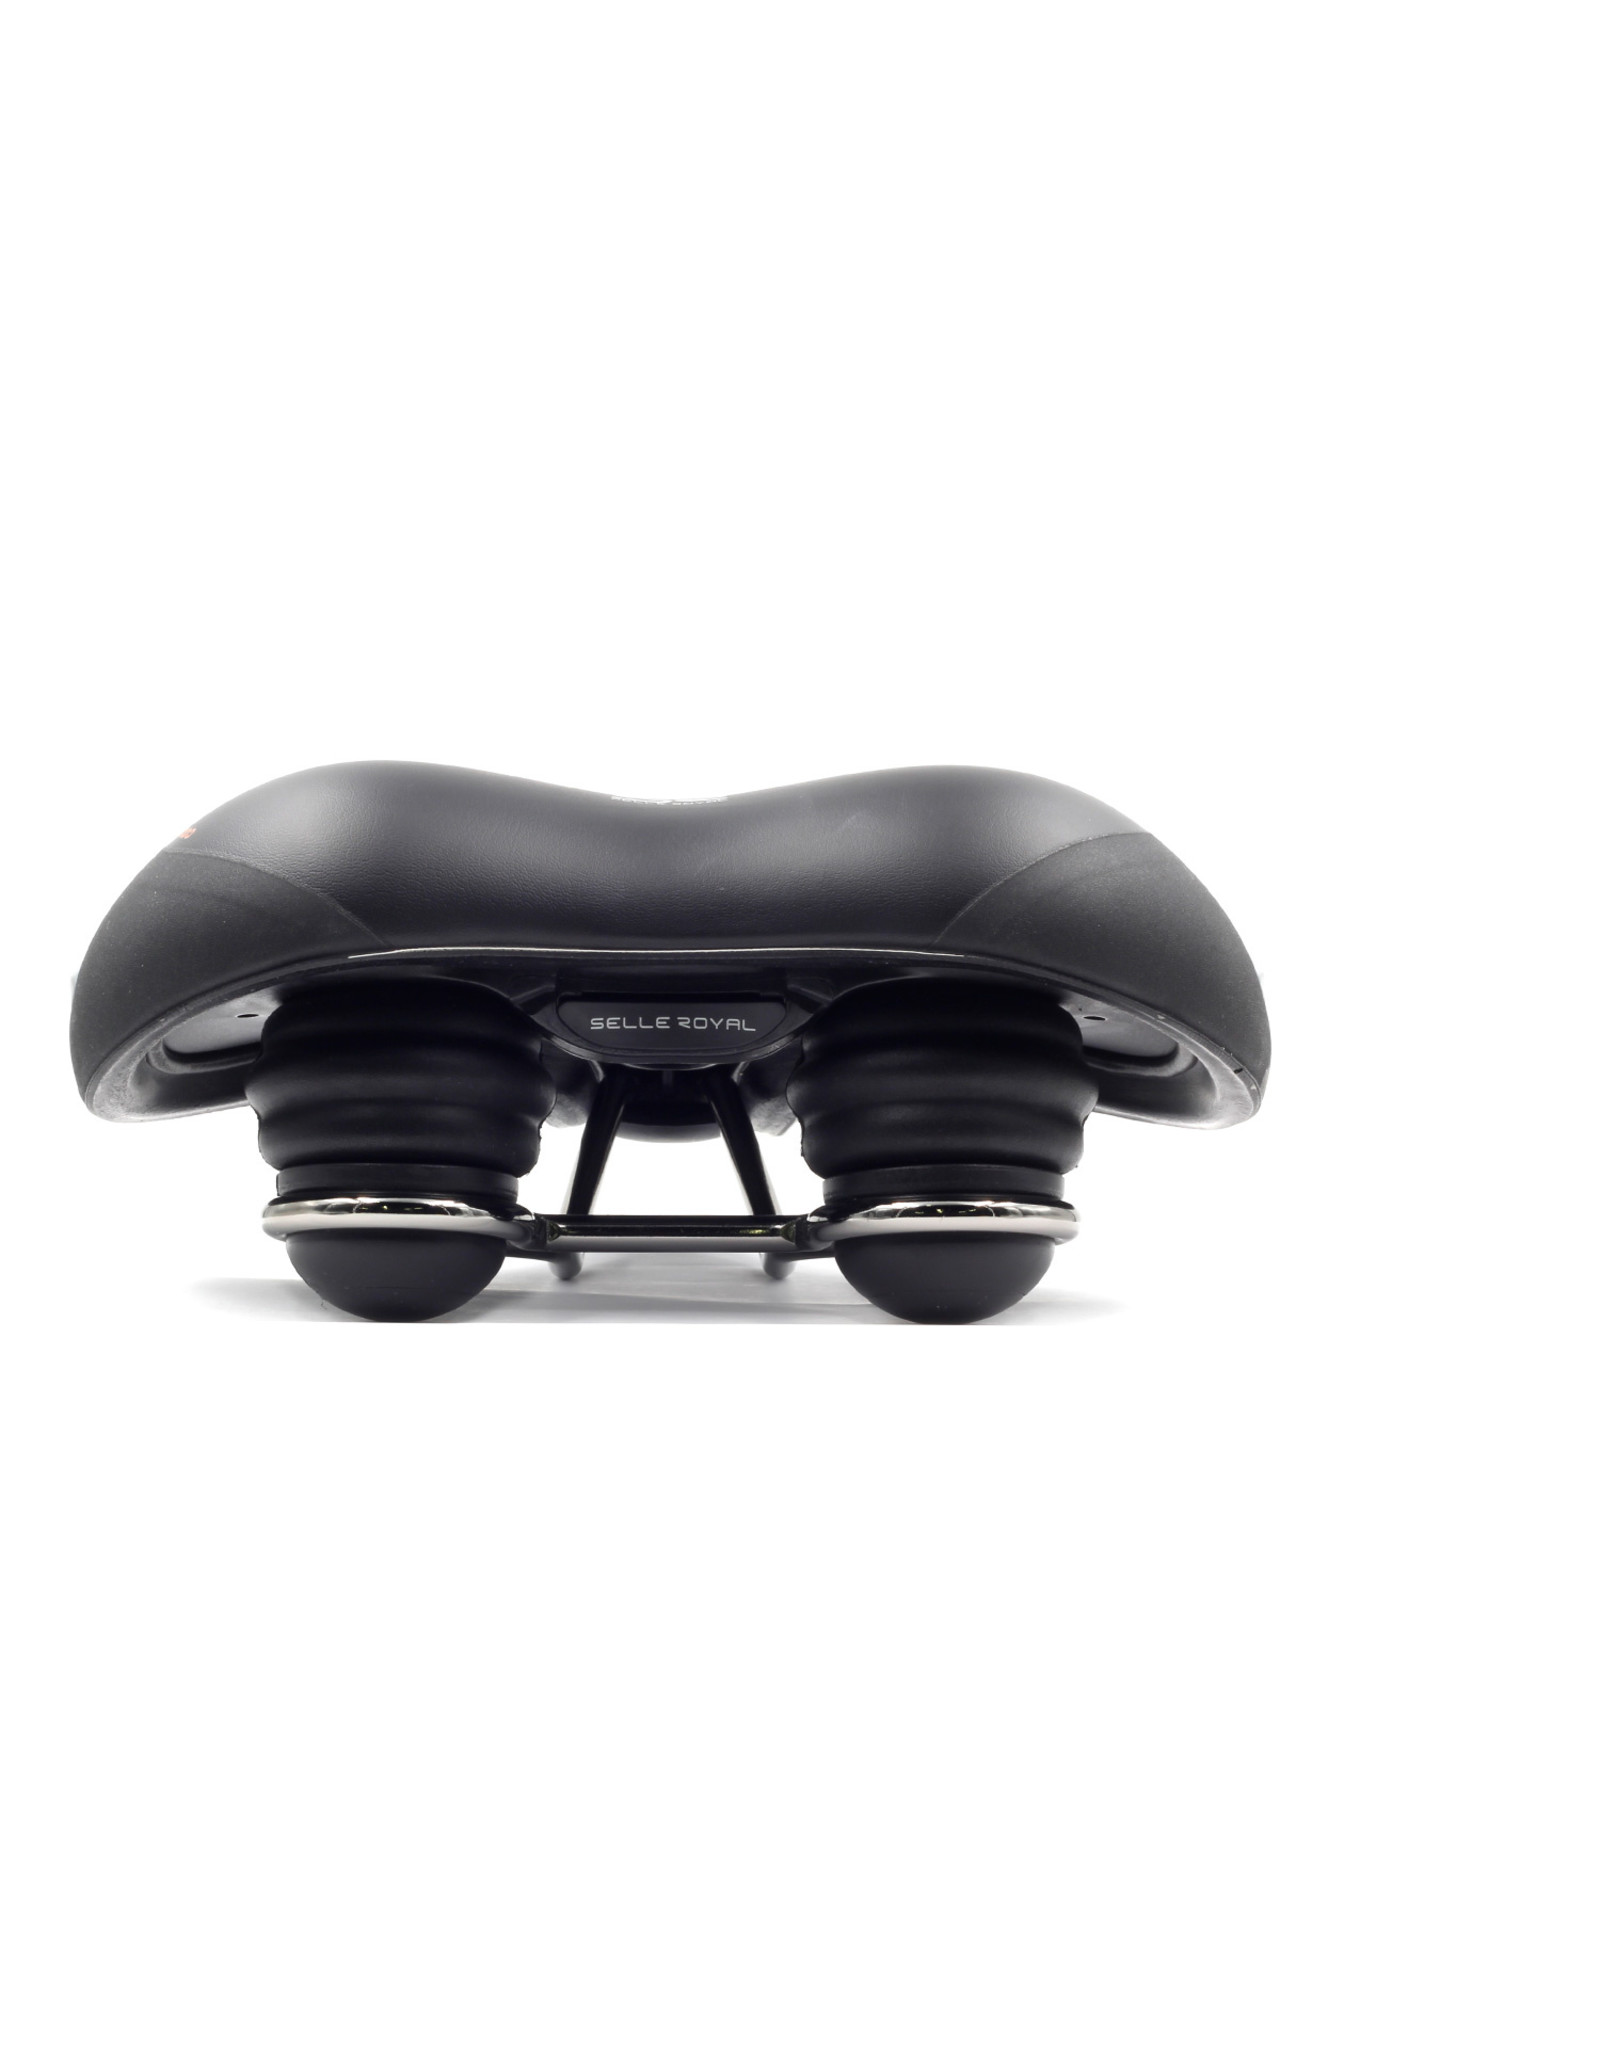 Selle Royal Selle Royal Lookin Relaxed - Unisex Sizes L 260mm / W 228mm - Black